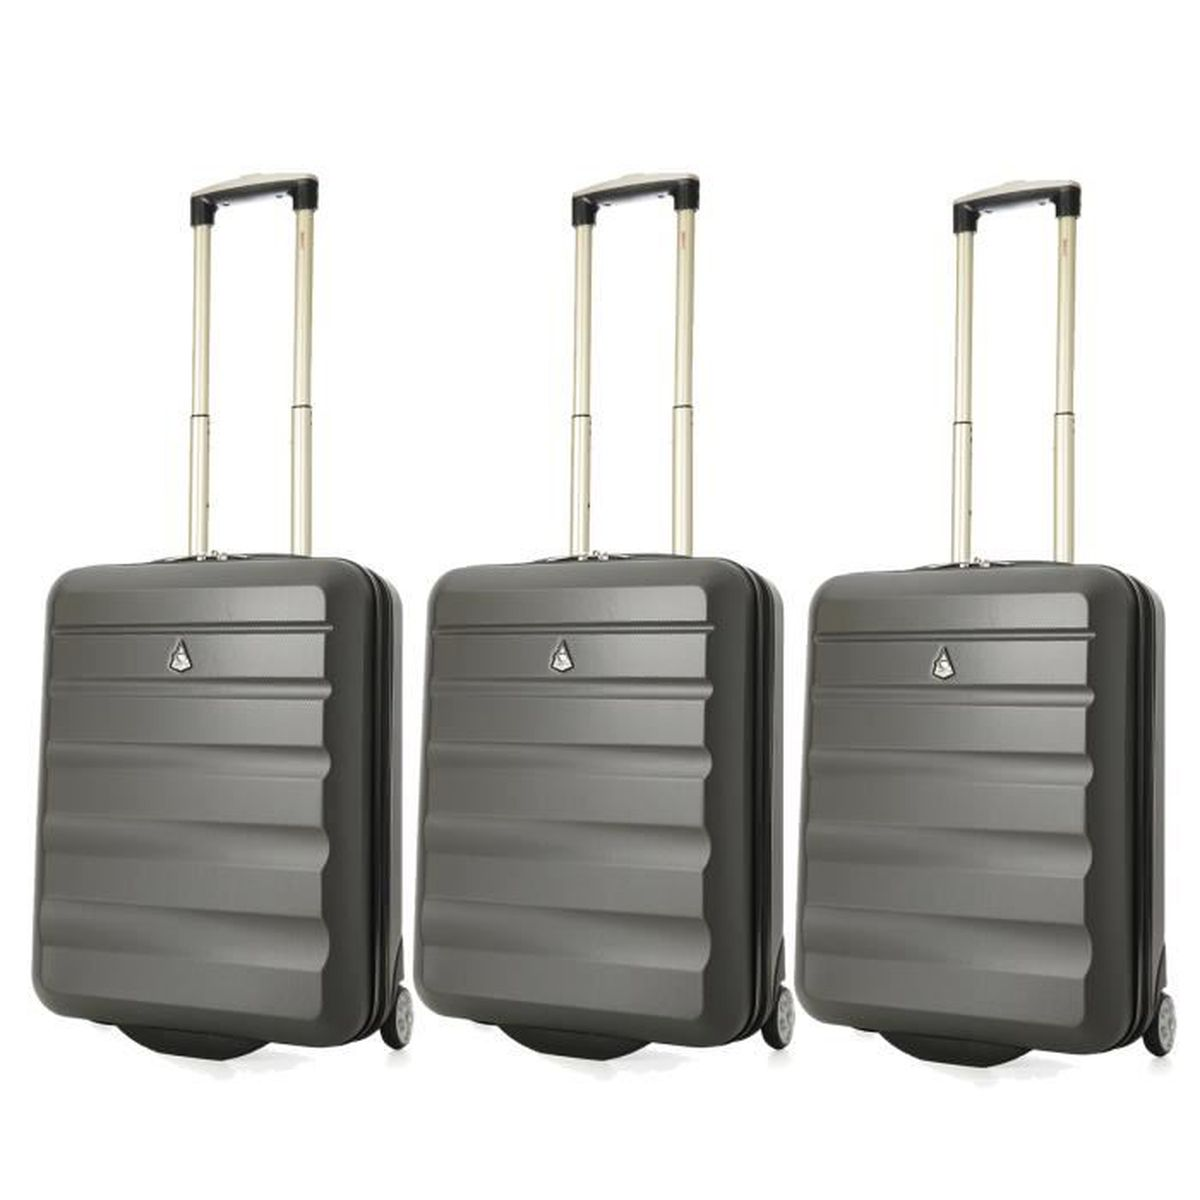 aerolite 55x40x20 taille maximale ryanair bagage cabine main valise souple l ger 2 roulettes. Black Bedroom Furniture Sets. Home Design Ideas